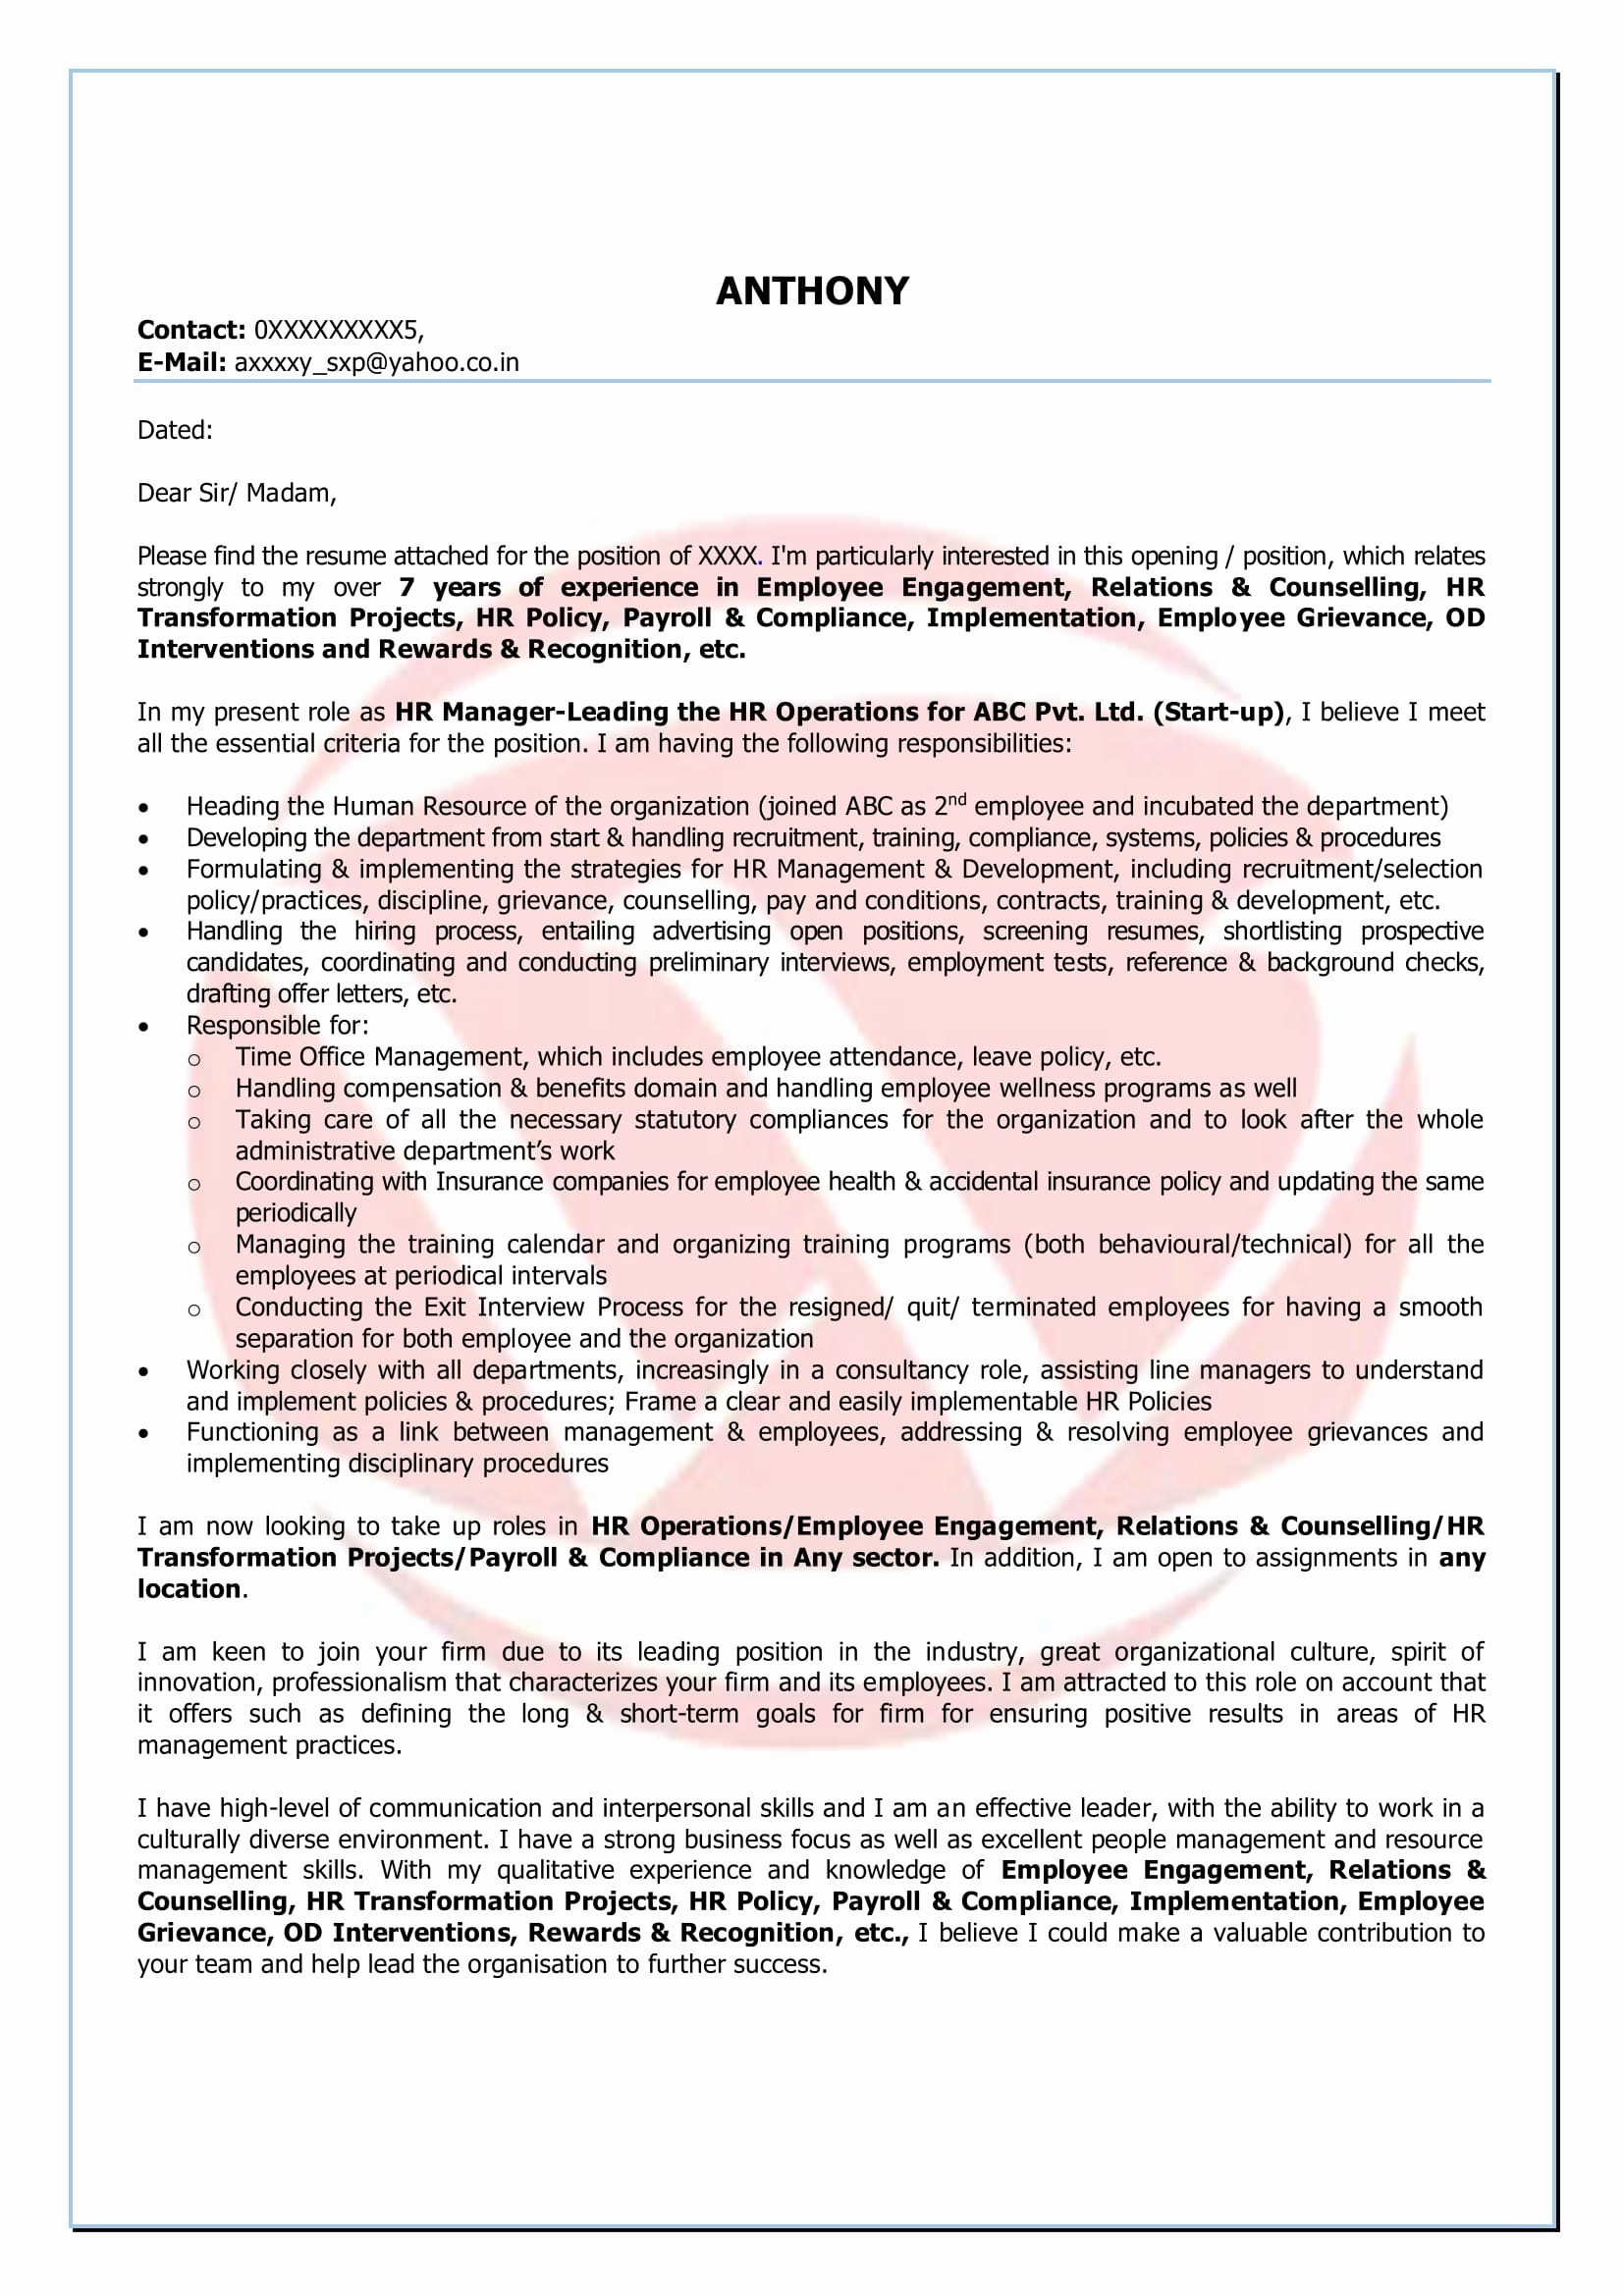 Open Enrollment Template Letter - Self Evaluation Template for Employees